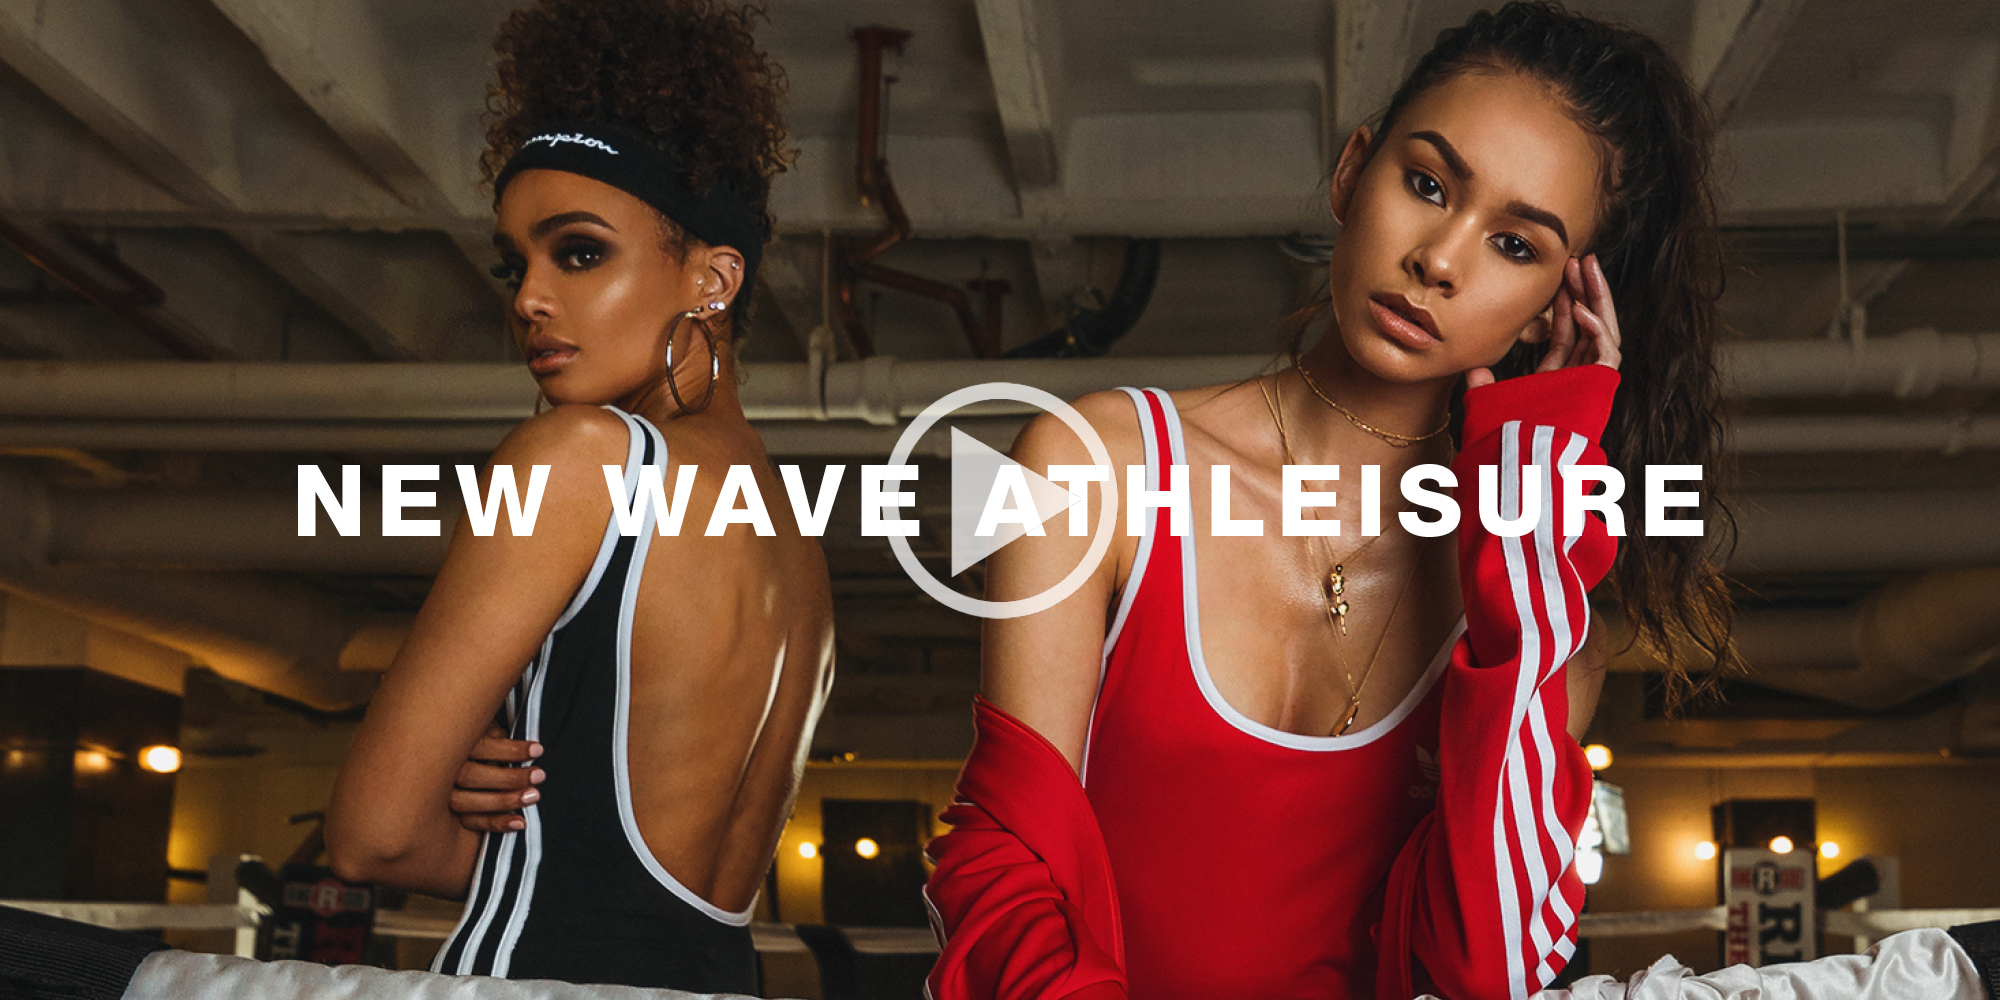 New Wave Athleisure